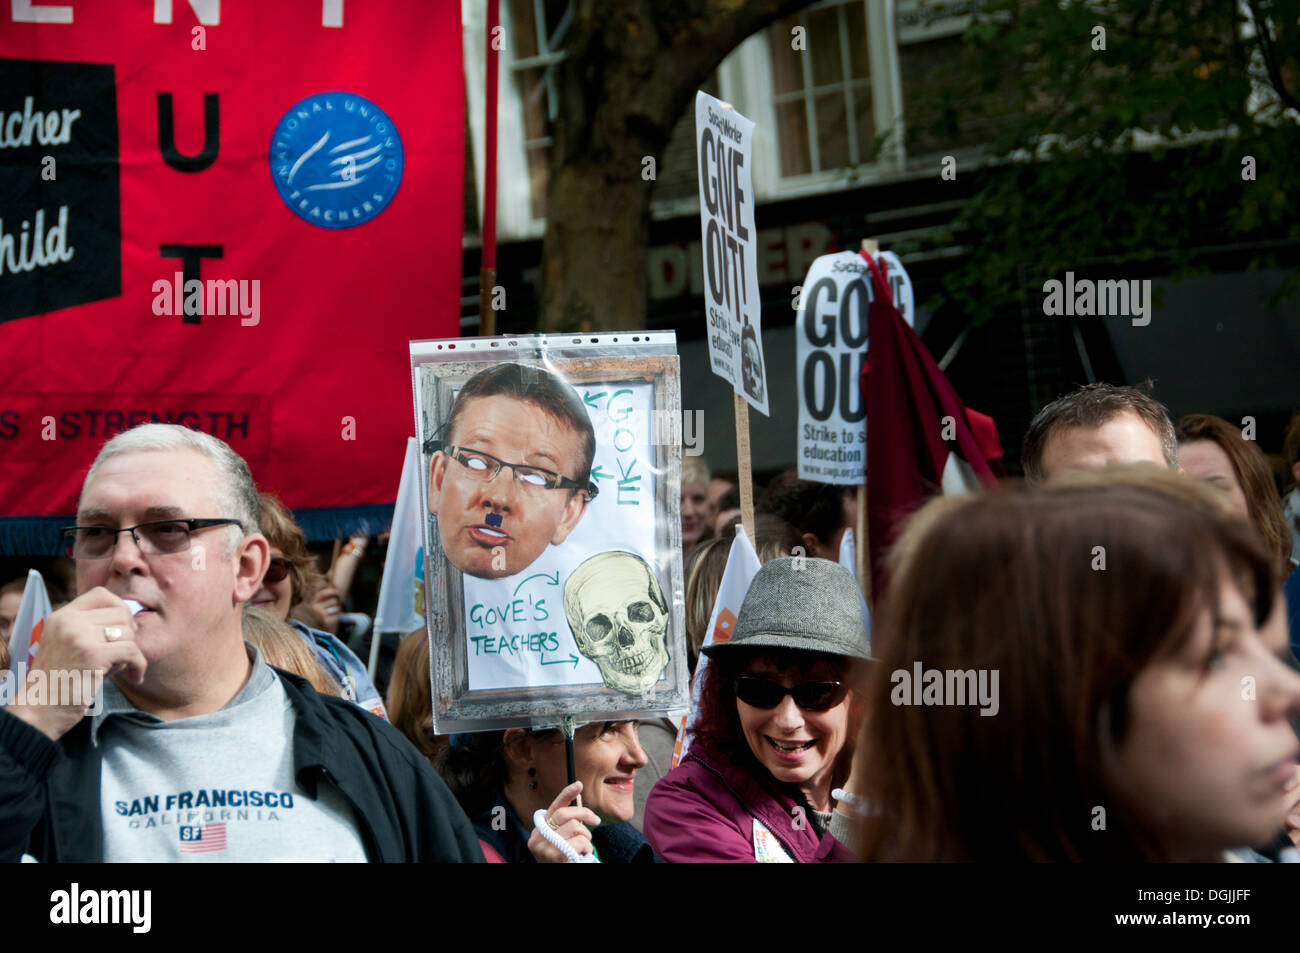 October 17th 2013. Teachers demonstrate against proposed changes to pensions - Stock Image